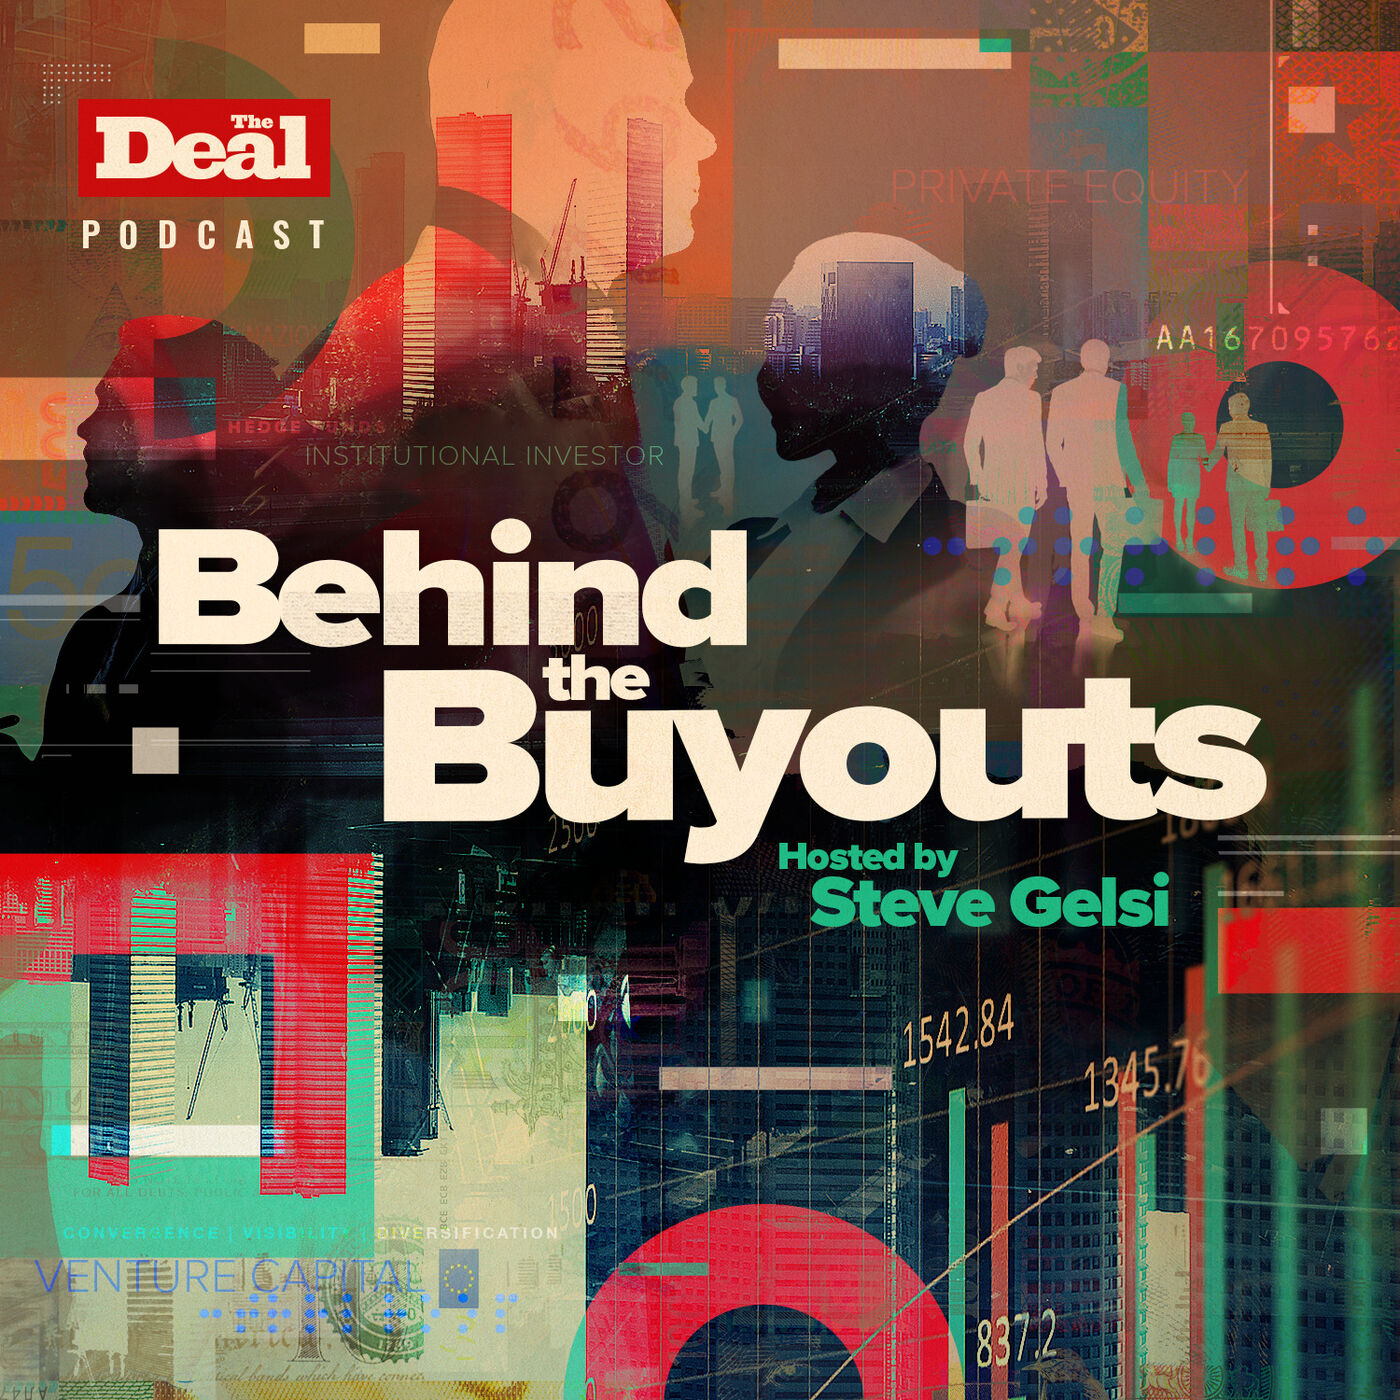 Behind the Buyouts Podcast: TJ Maloney Gives Long View on PE